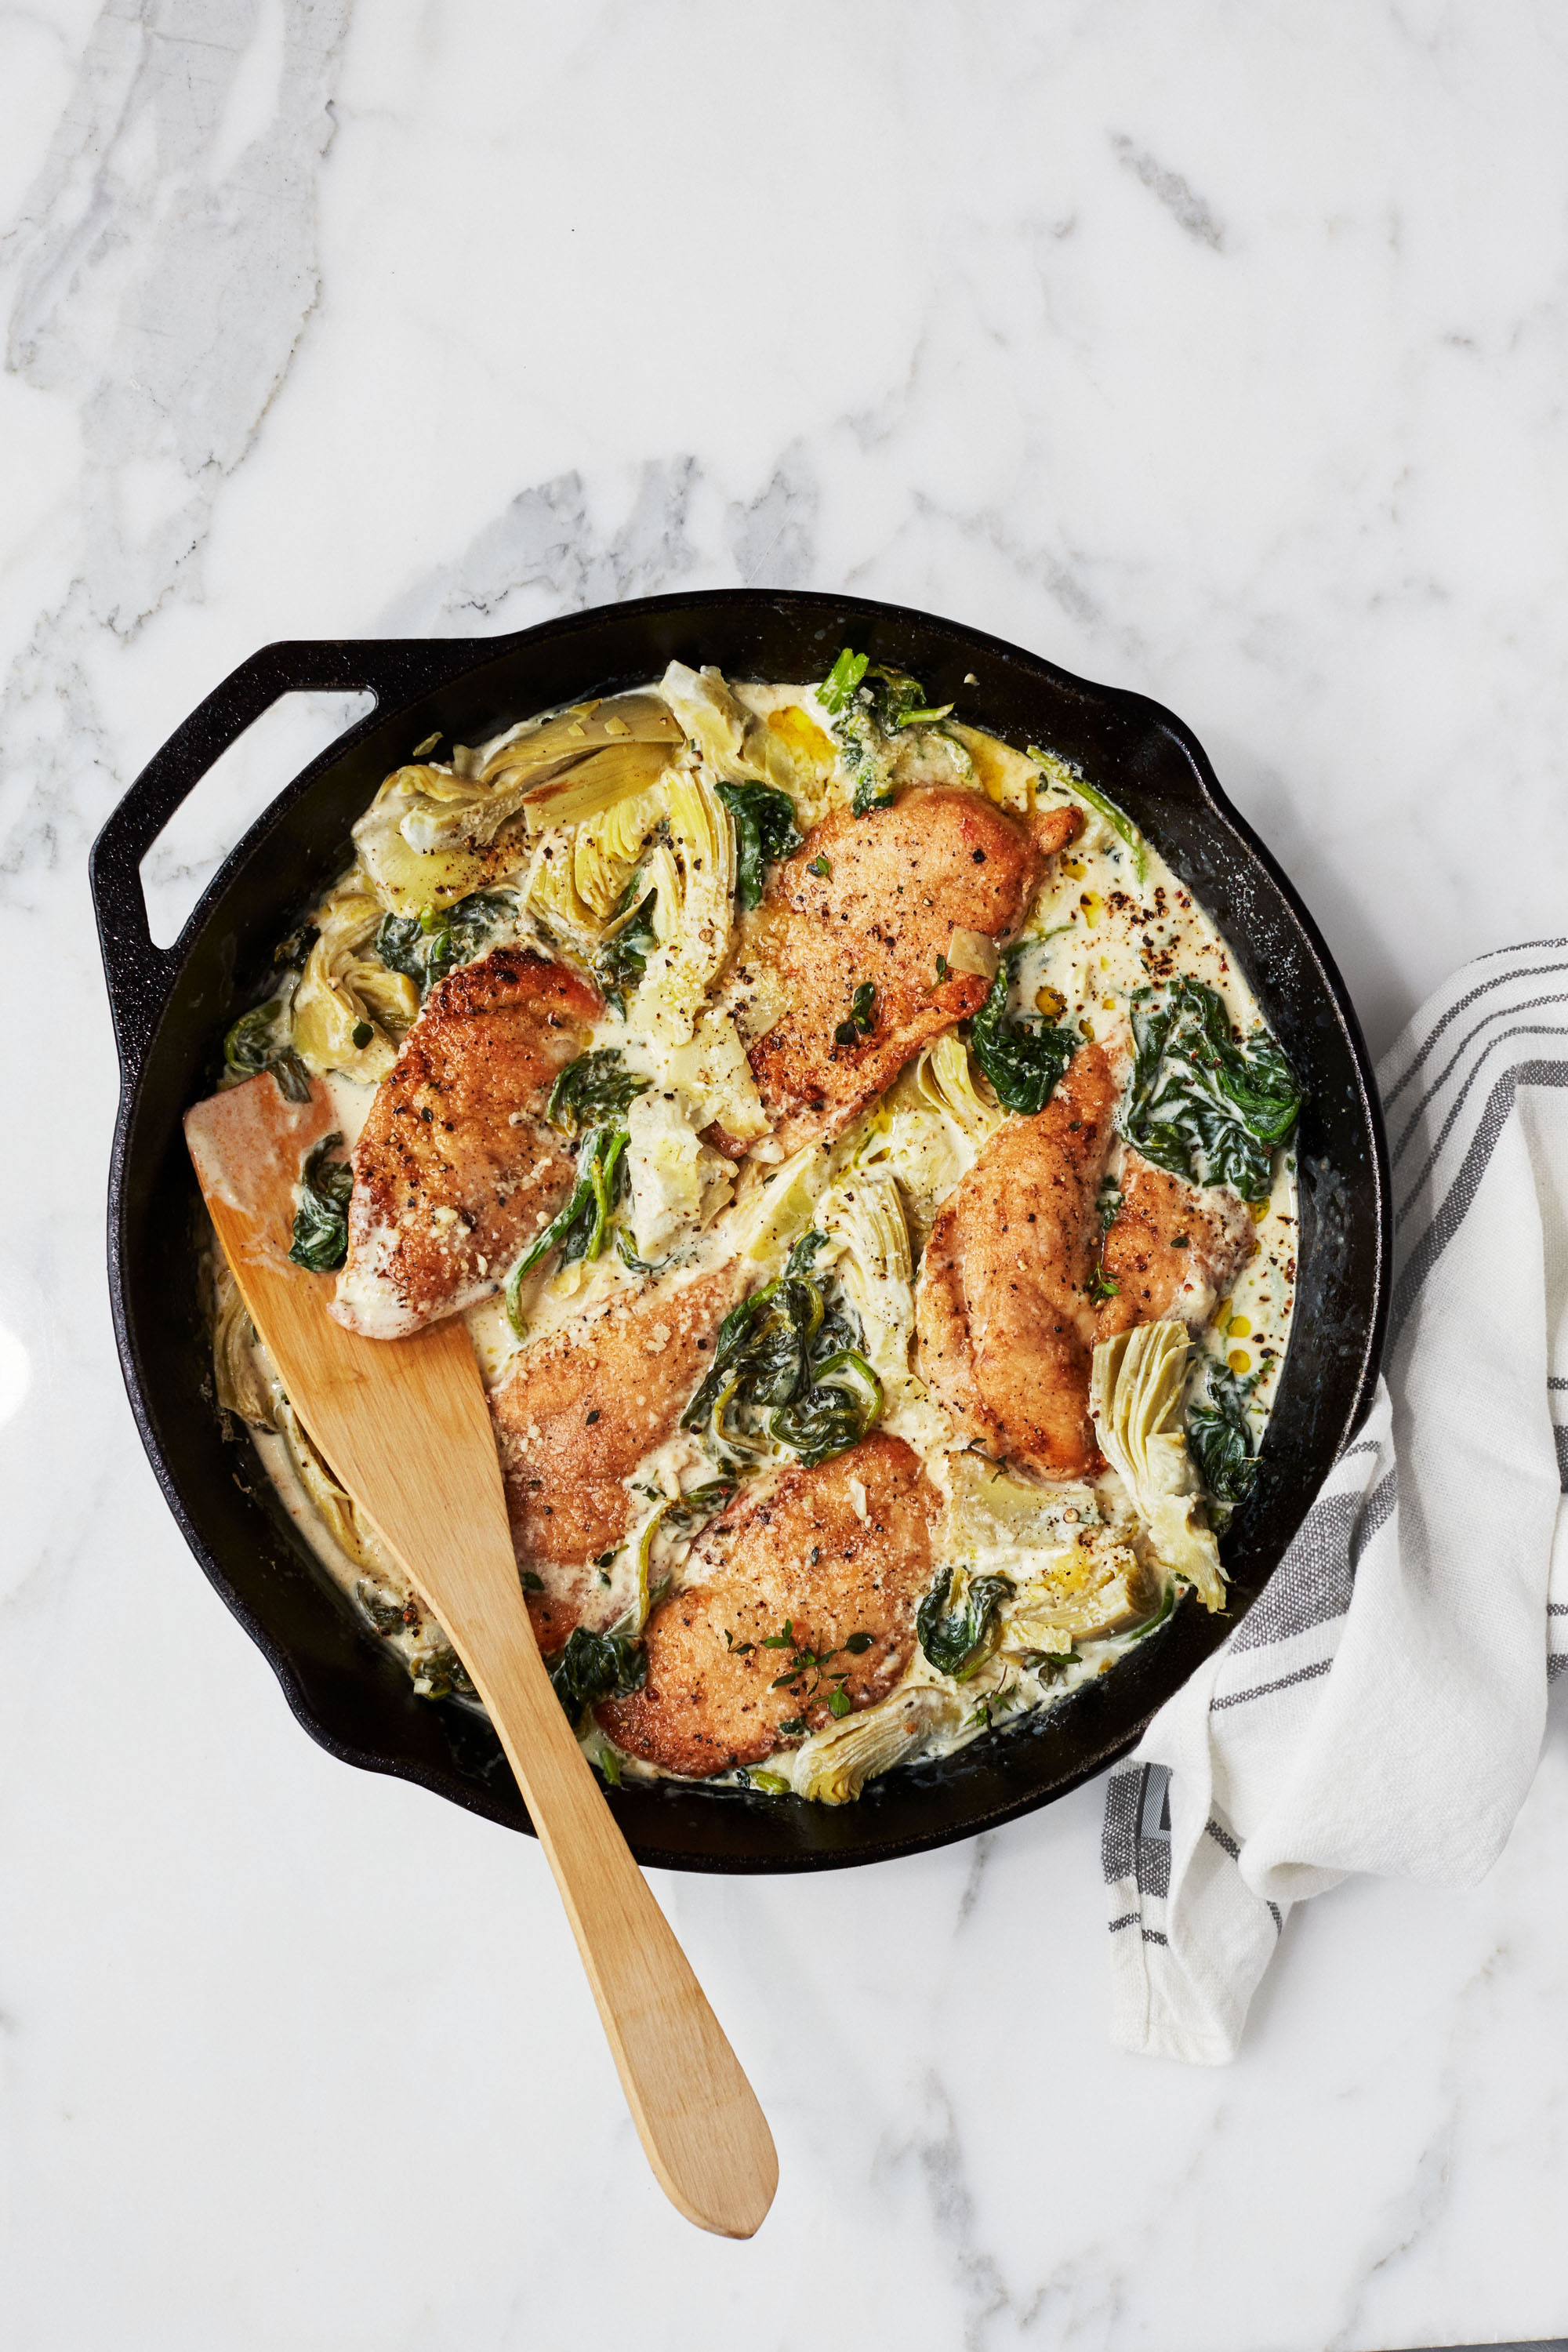 3.5.One-Pan Meals Just Right for Dinner Tonight